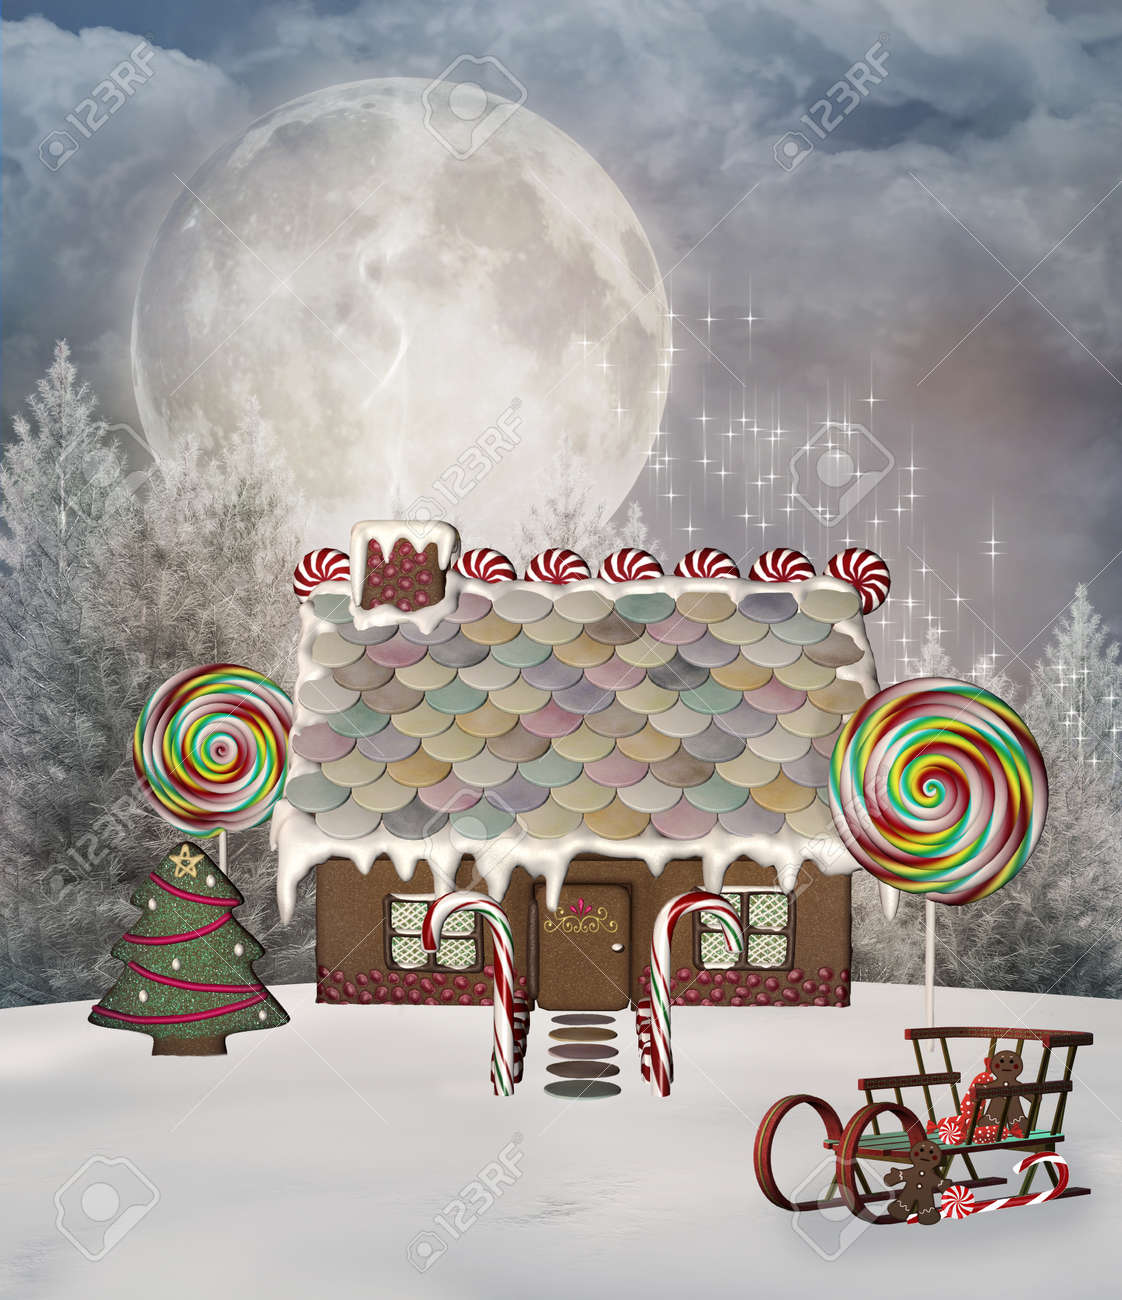 Gingerbread house Stock Photo - 23291334